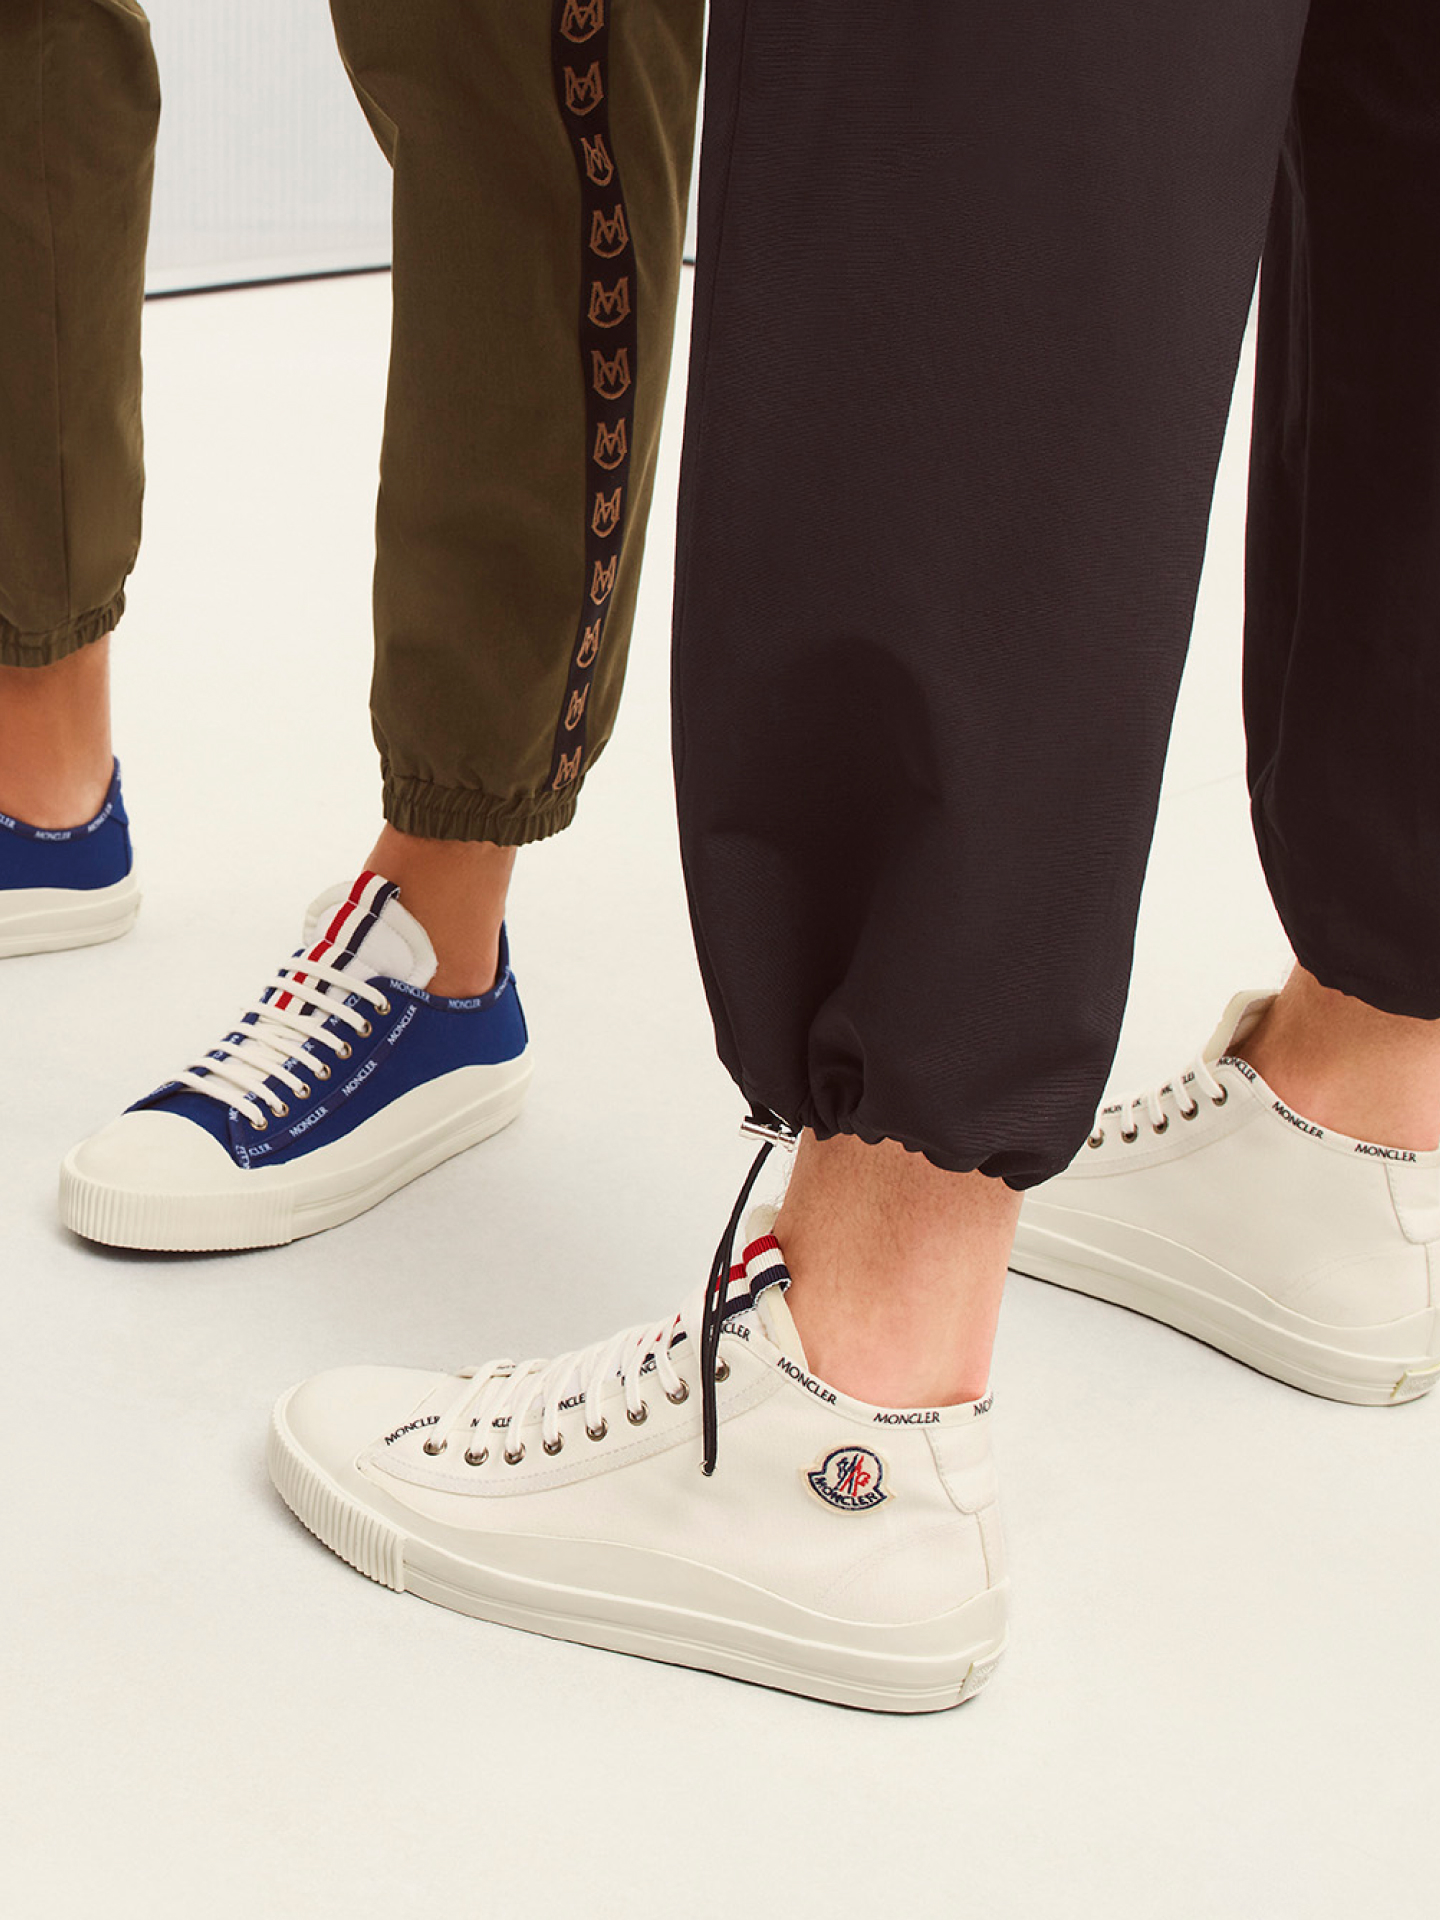 Moncler white sneakers